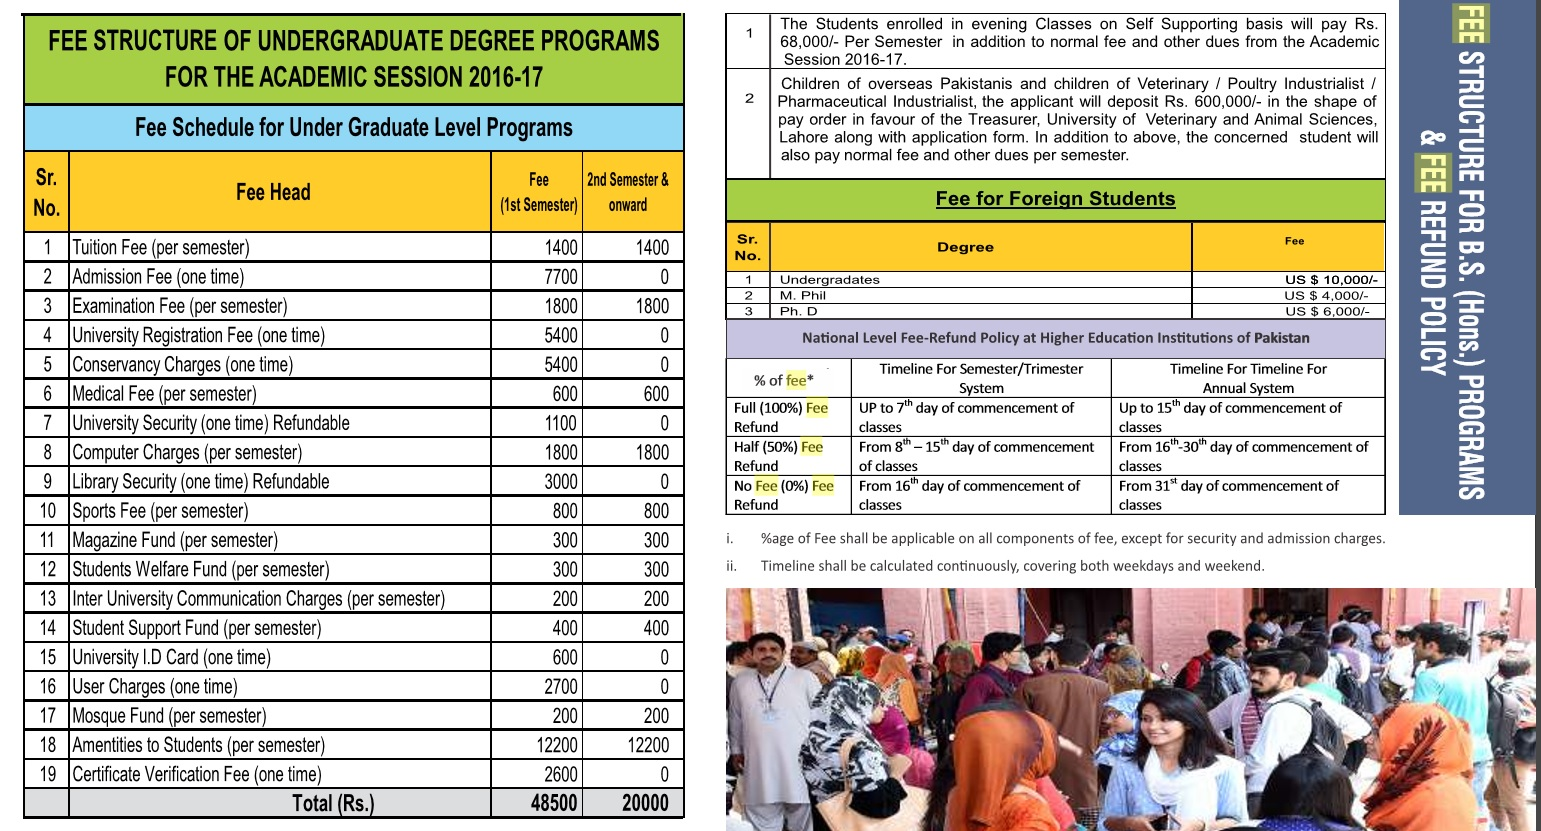 University of Veterinary and Animal Sciences fee structure